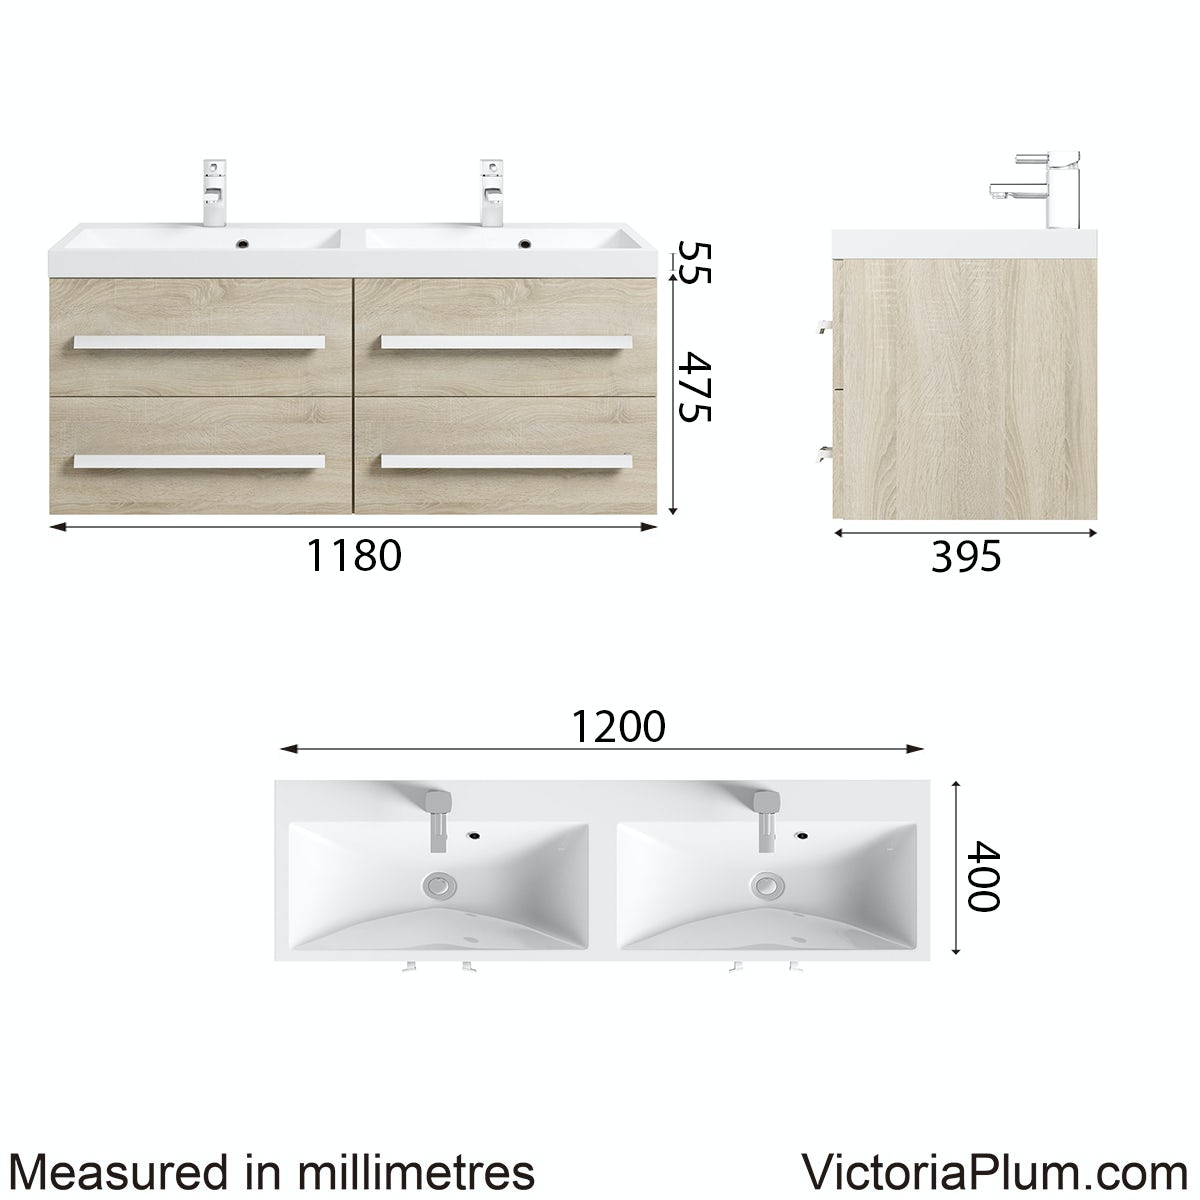 Dimensions for Orchard Arden oak wall hung double basin unit 1200mm